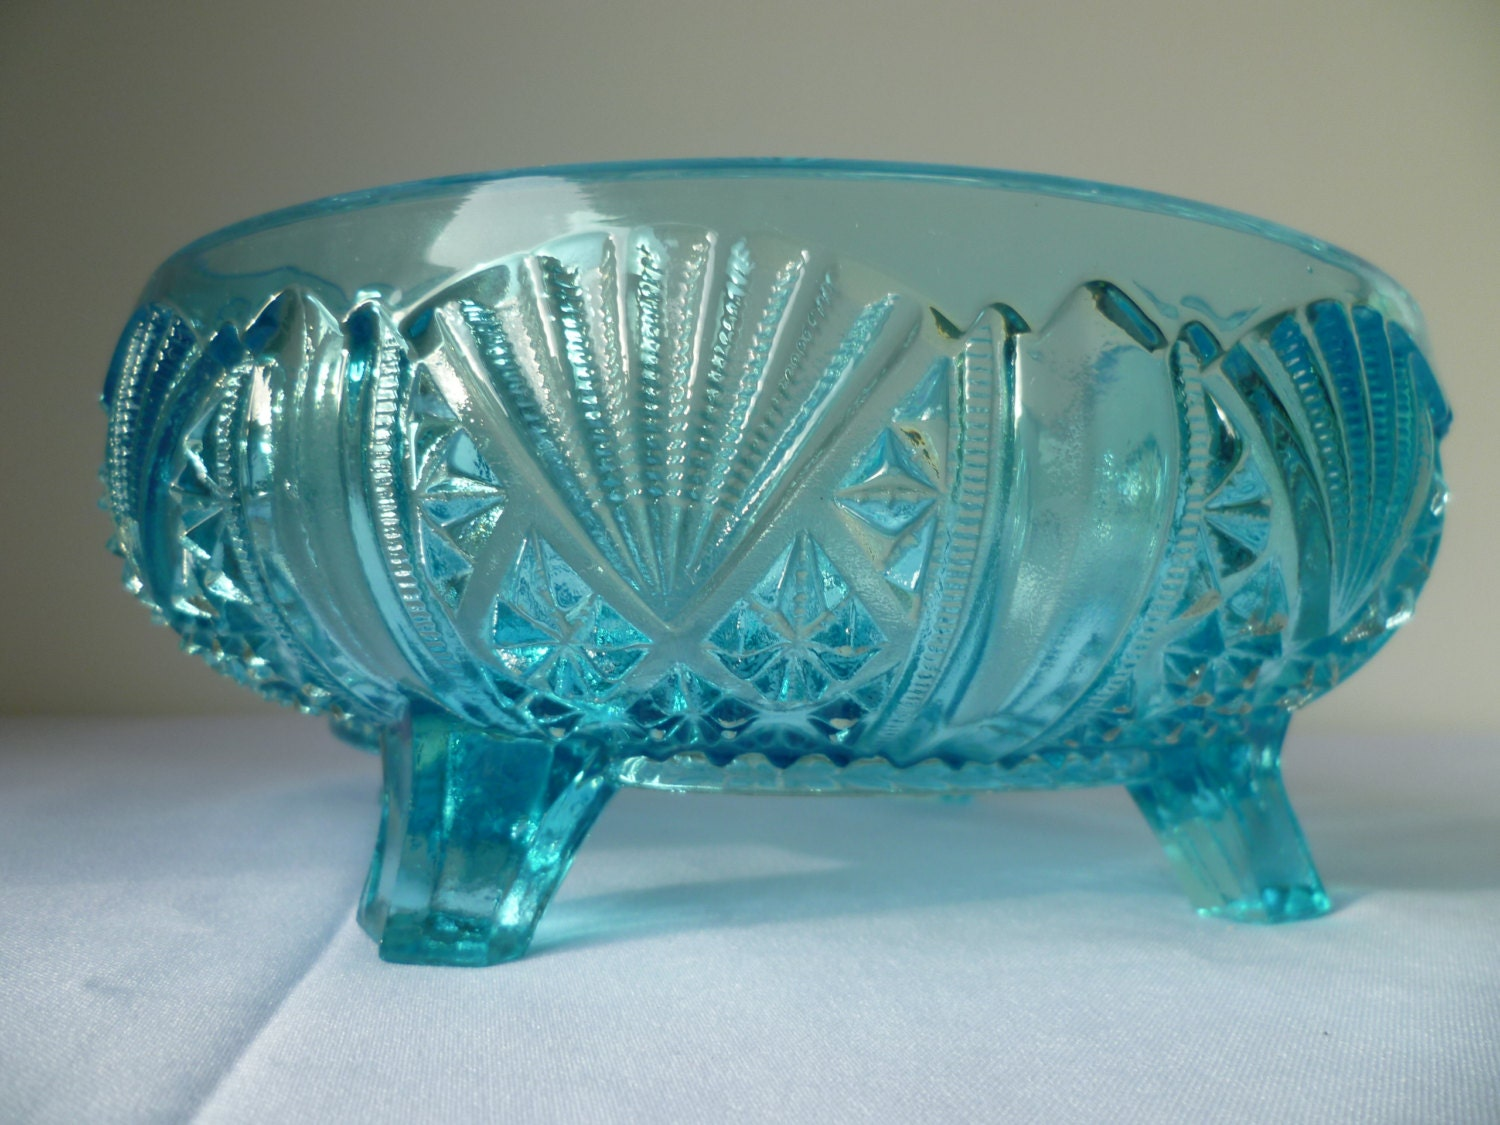 A 1920 1930 Large  Blue  Glass Bowl Decorated in Art Deco style Relief .